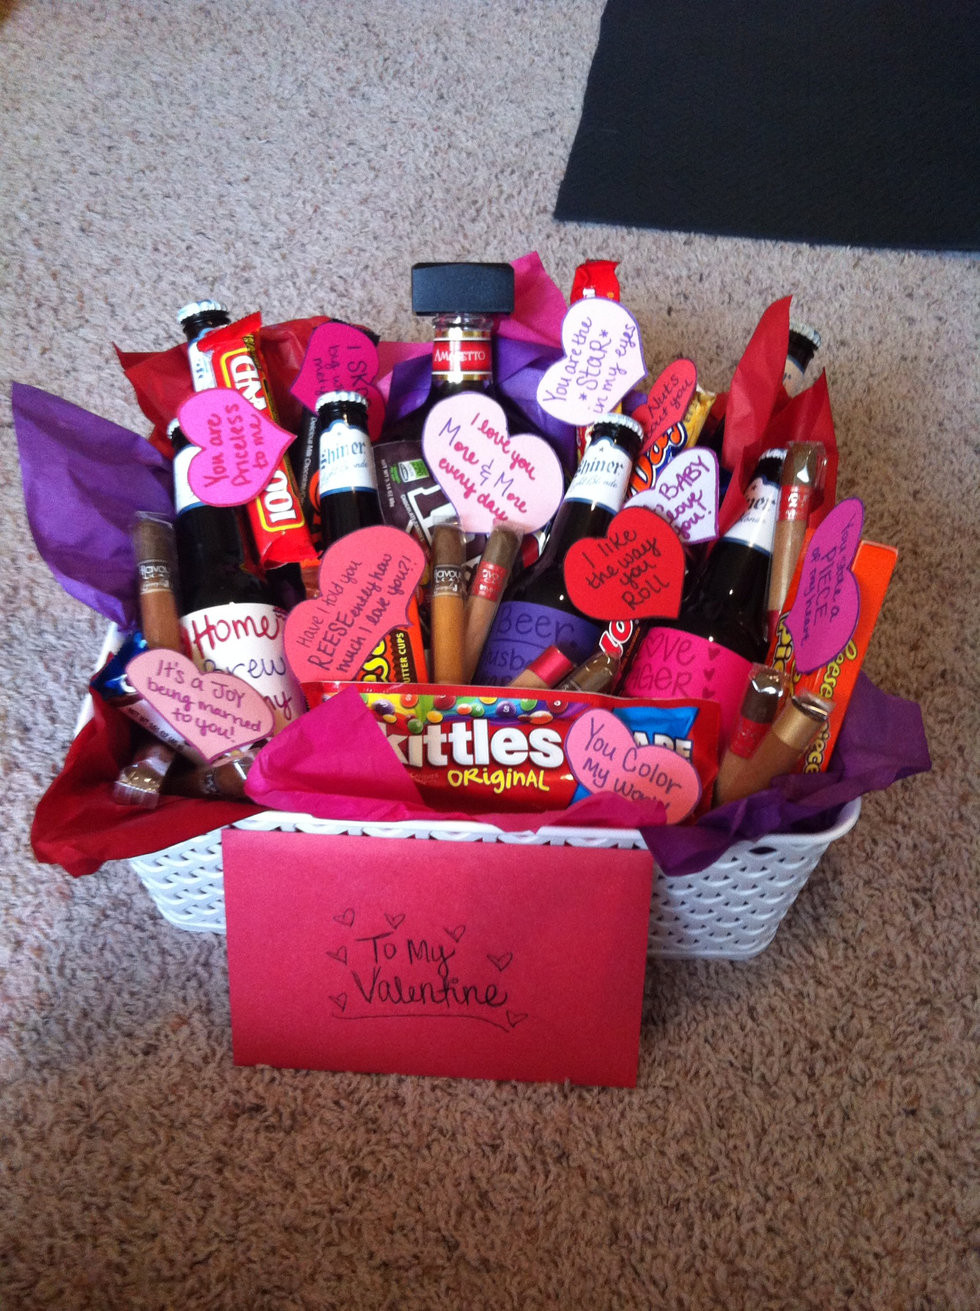 Cute Gift Basket Ideas  6 Things You Should Be Getting Your Boo Valentine s Day